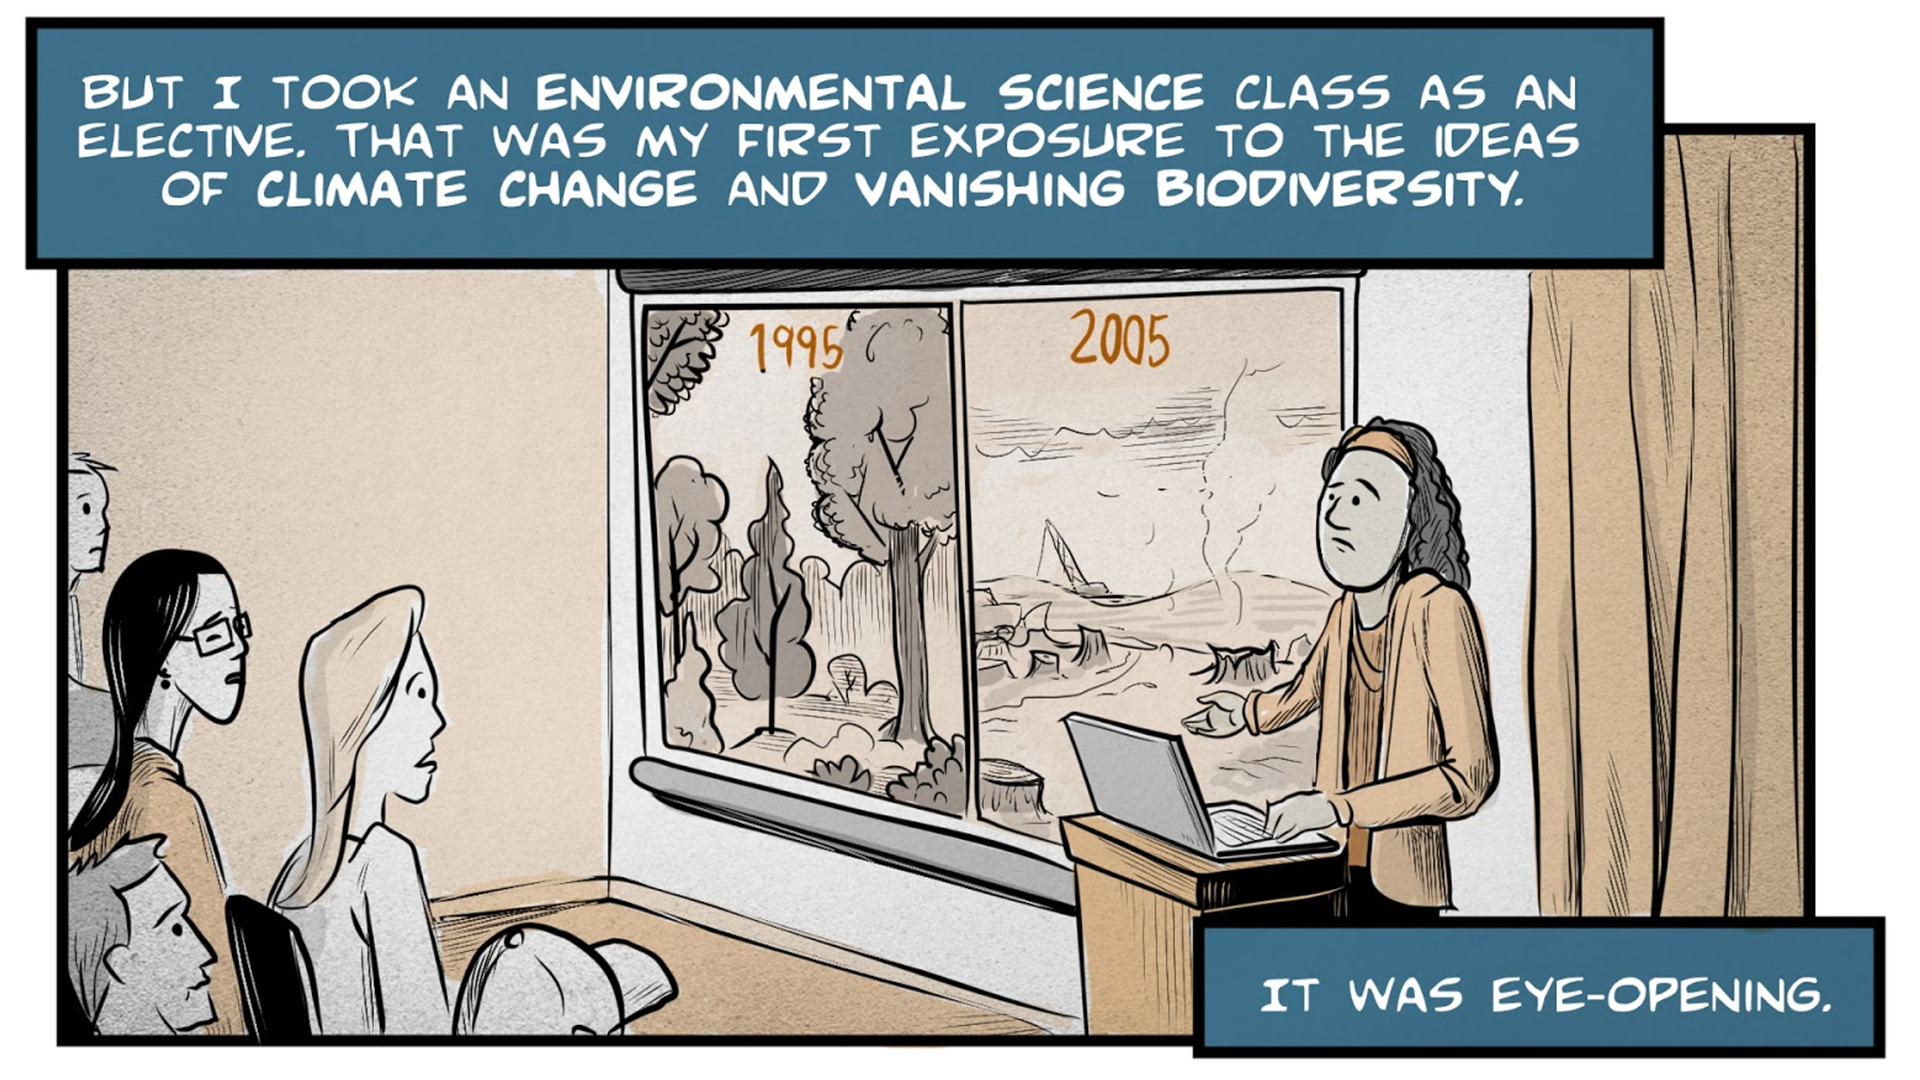 "Flashback to Monica's college years. Monica, the narrator, says, ""But I took an environmental science class as an elective. That was my first exposure to the ideas of climate change and vanishing biodiversity. It was eye-opening. "" A professor stands in front of a classroom, gesturing toward a screen that shows a forested area labeled ""1995"" and a barren landscape with tree stumps labeled ""2005."" Monica and a classmate look on with worried expressions."